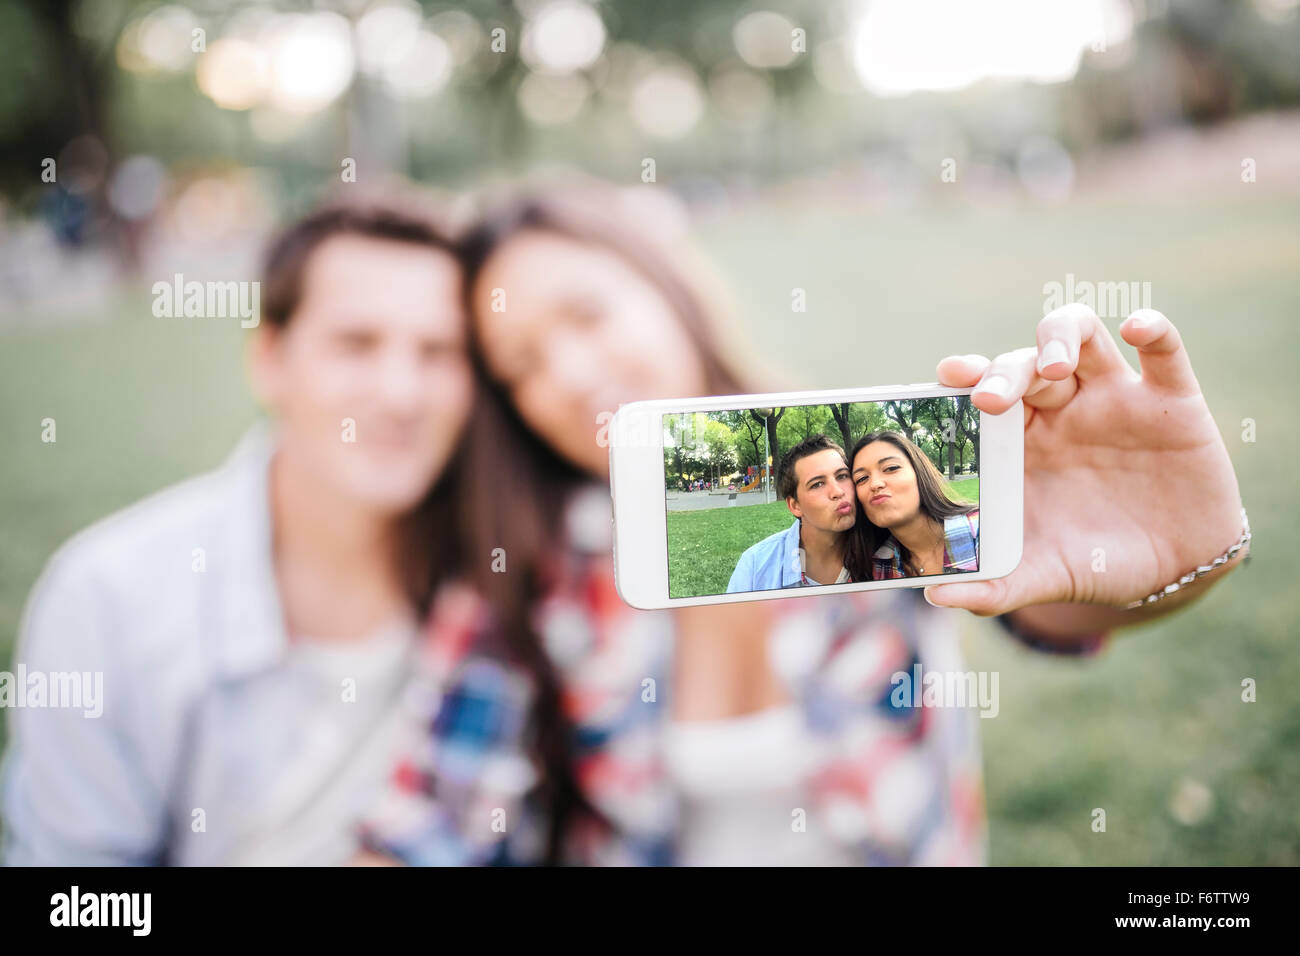 Photo on display of a smartphone of young couple in love - Stock Image